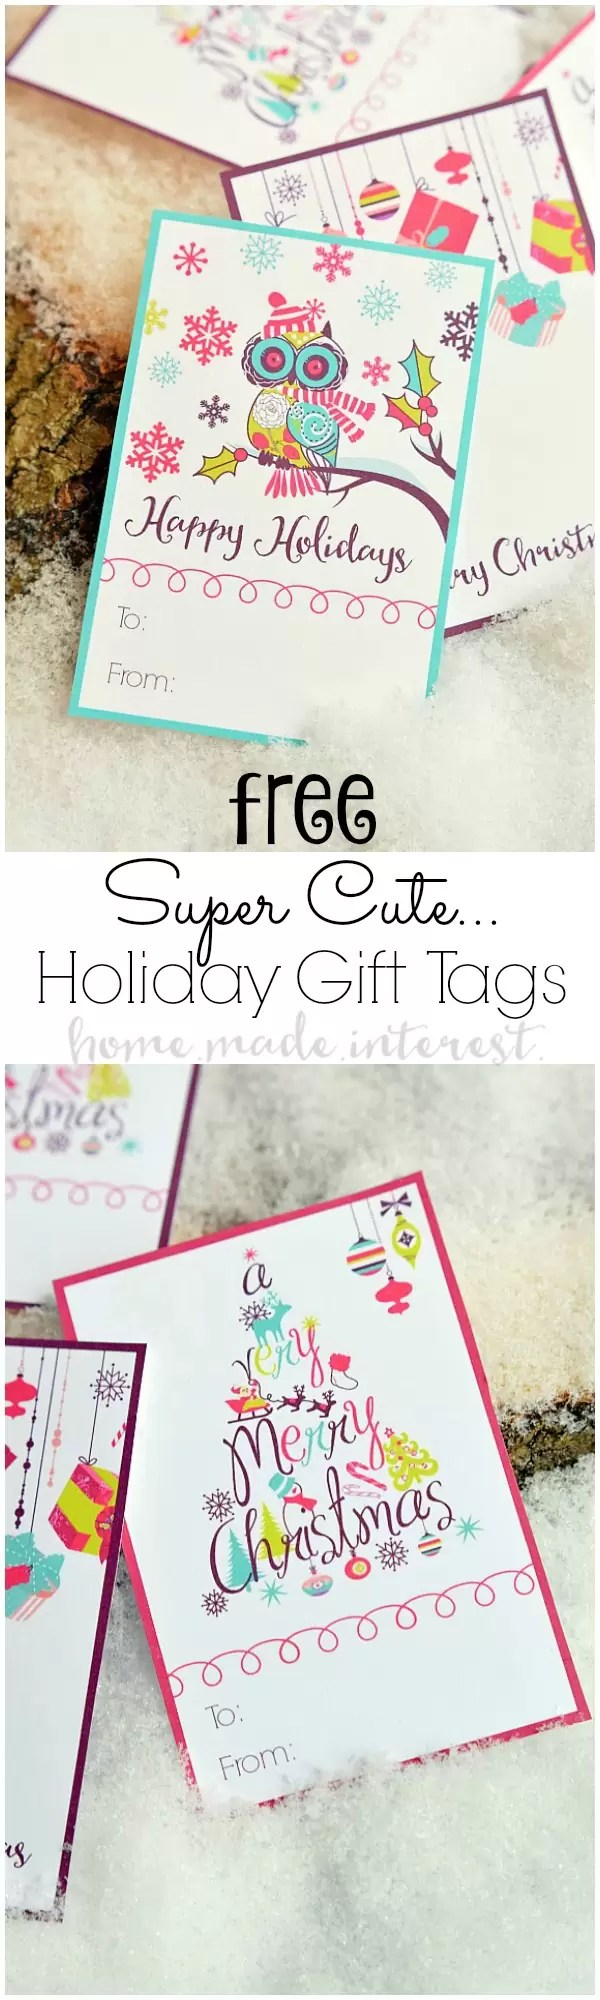 photograph about Cute Gift Tags Printable named Tremendous Adorable Trip Reward Tags - Totally free Printable! - Household. Intended